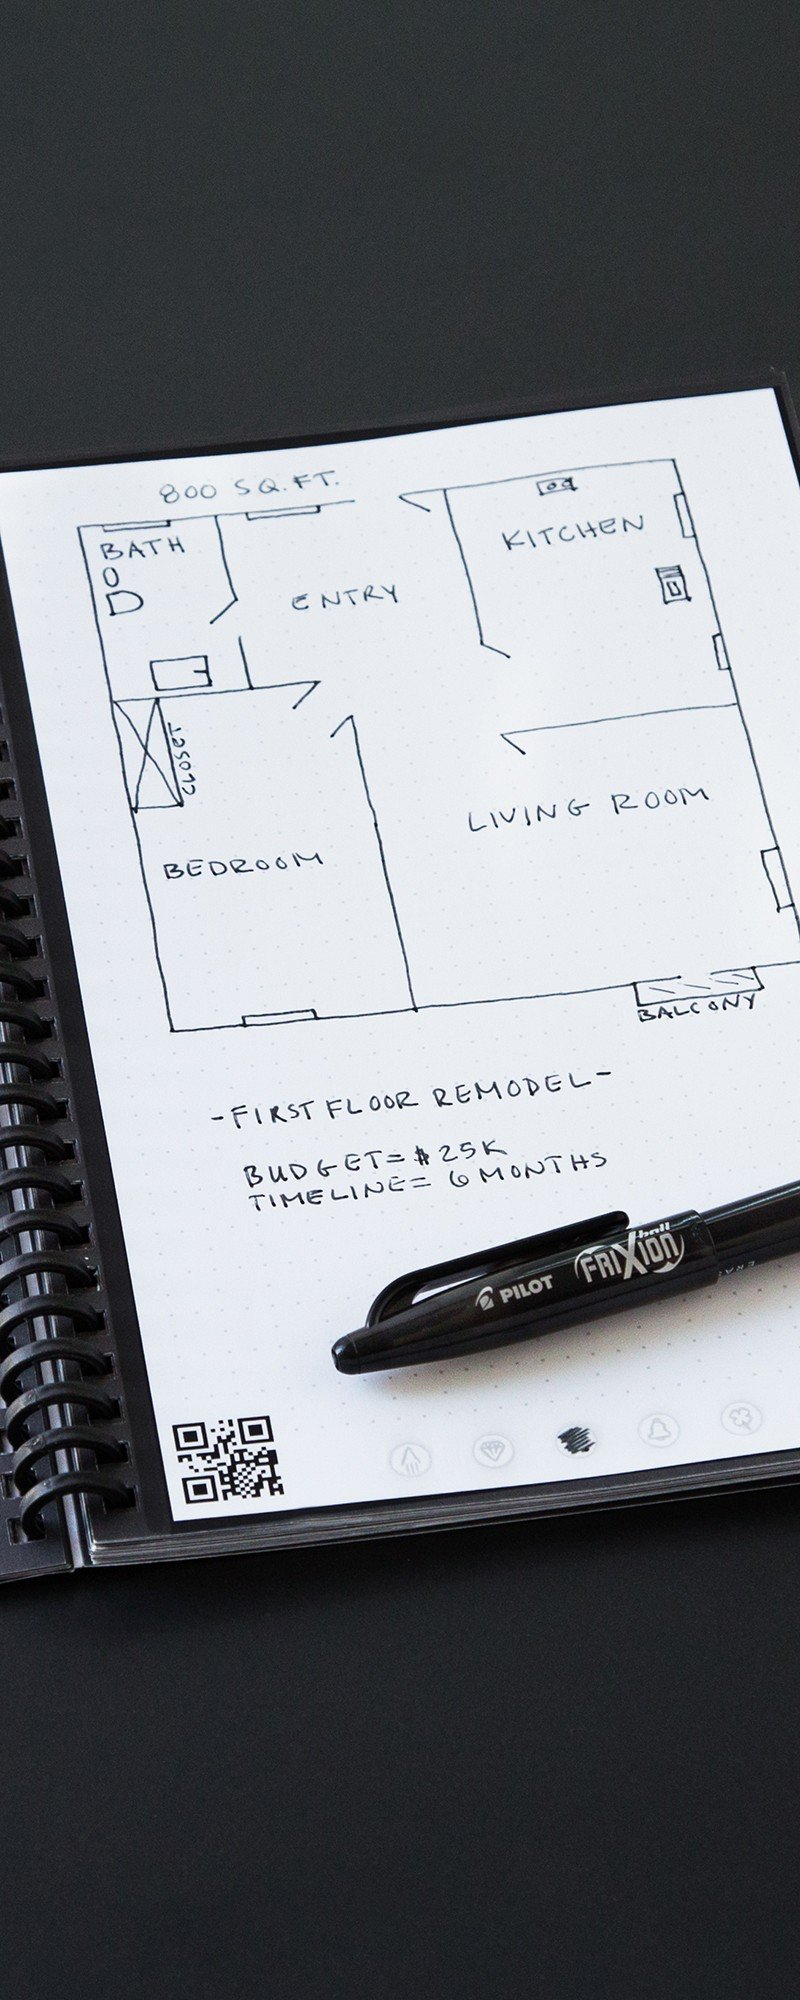 Reusable Cloud Sync Notebook By Rocketbook The Grommet